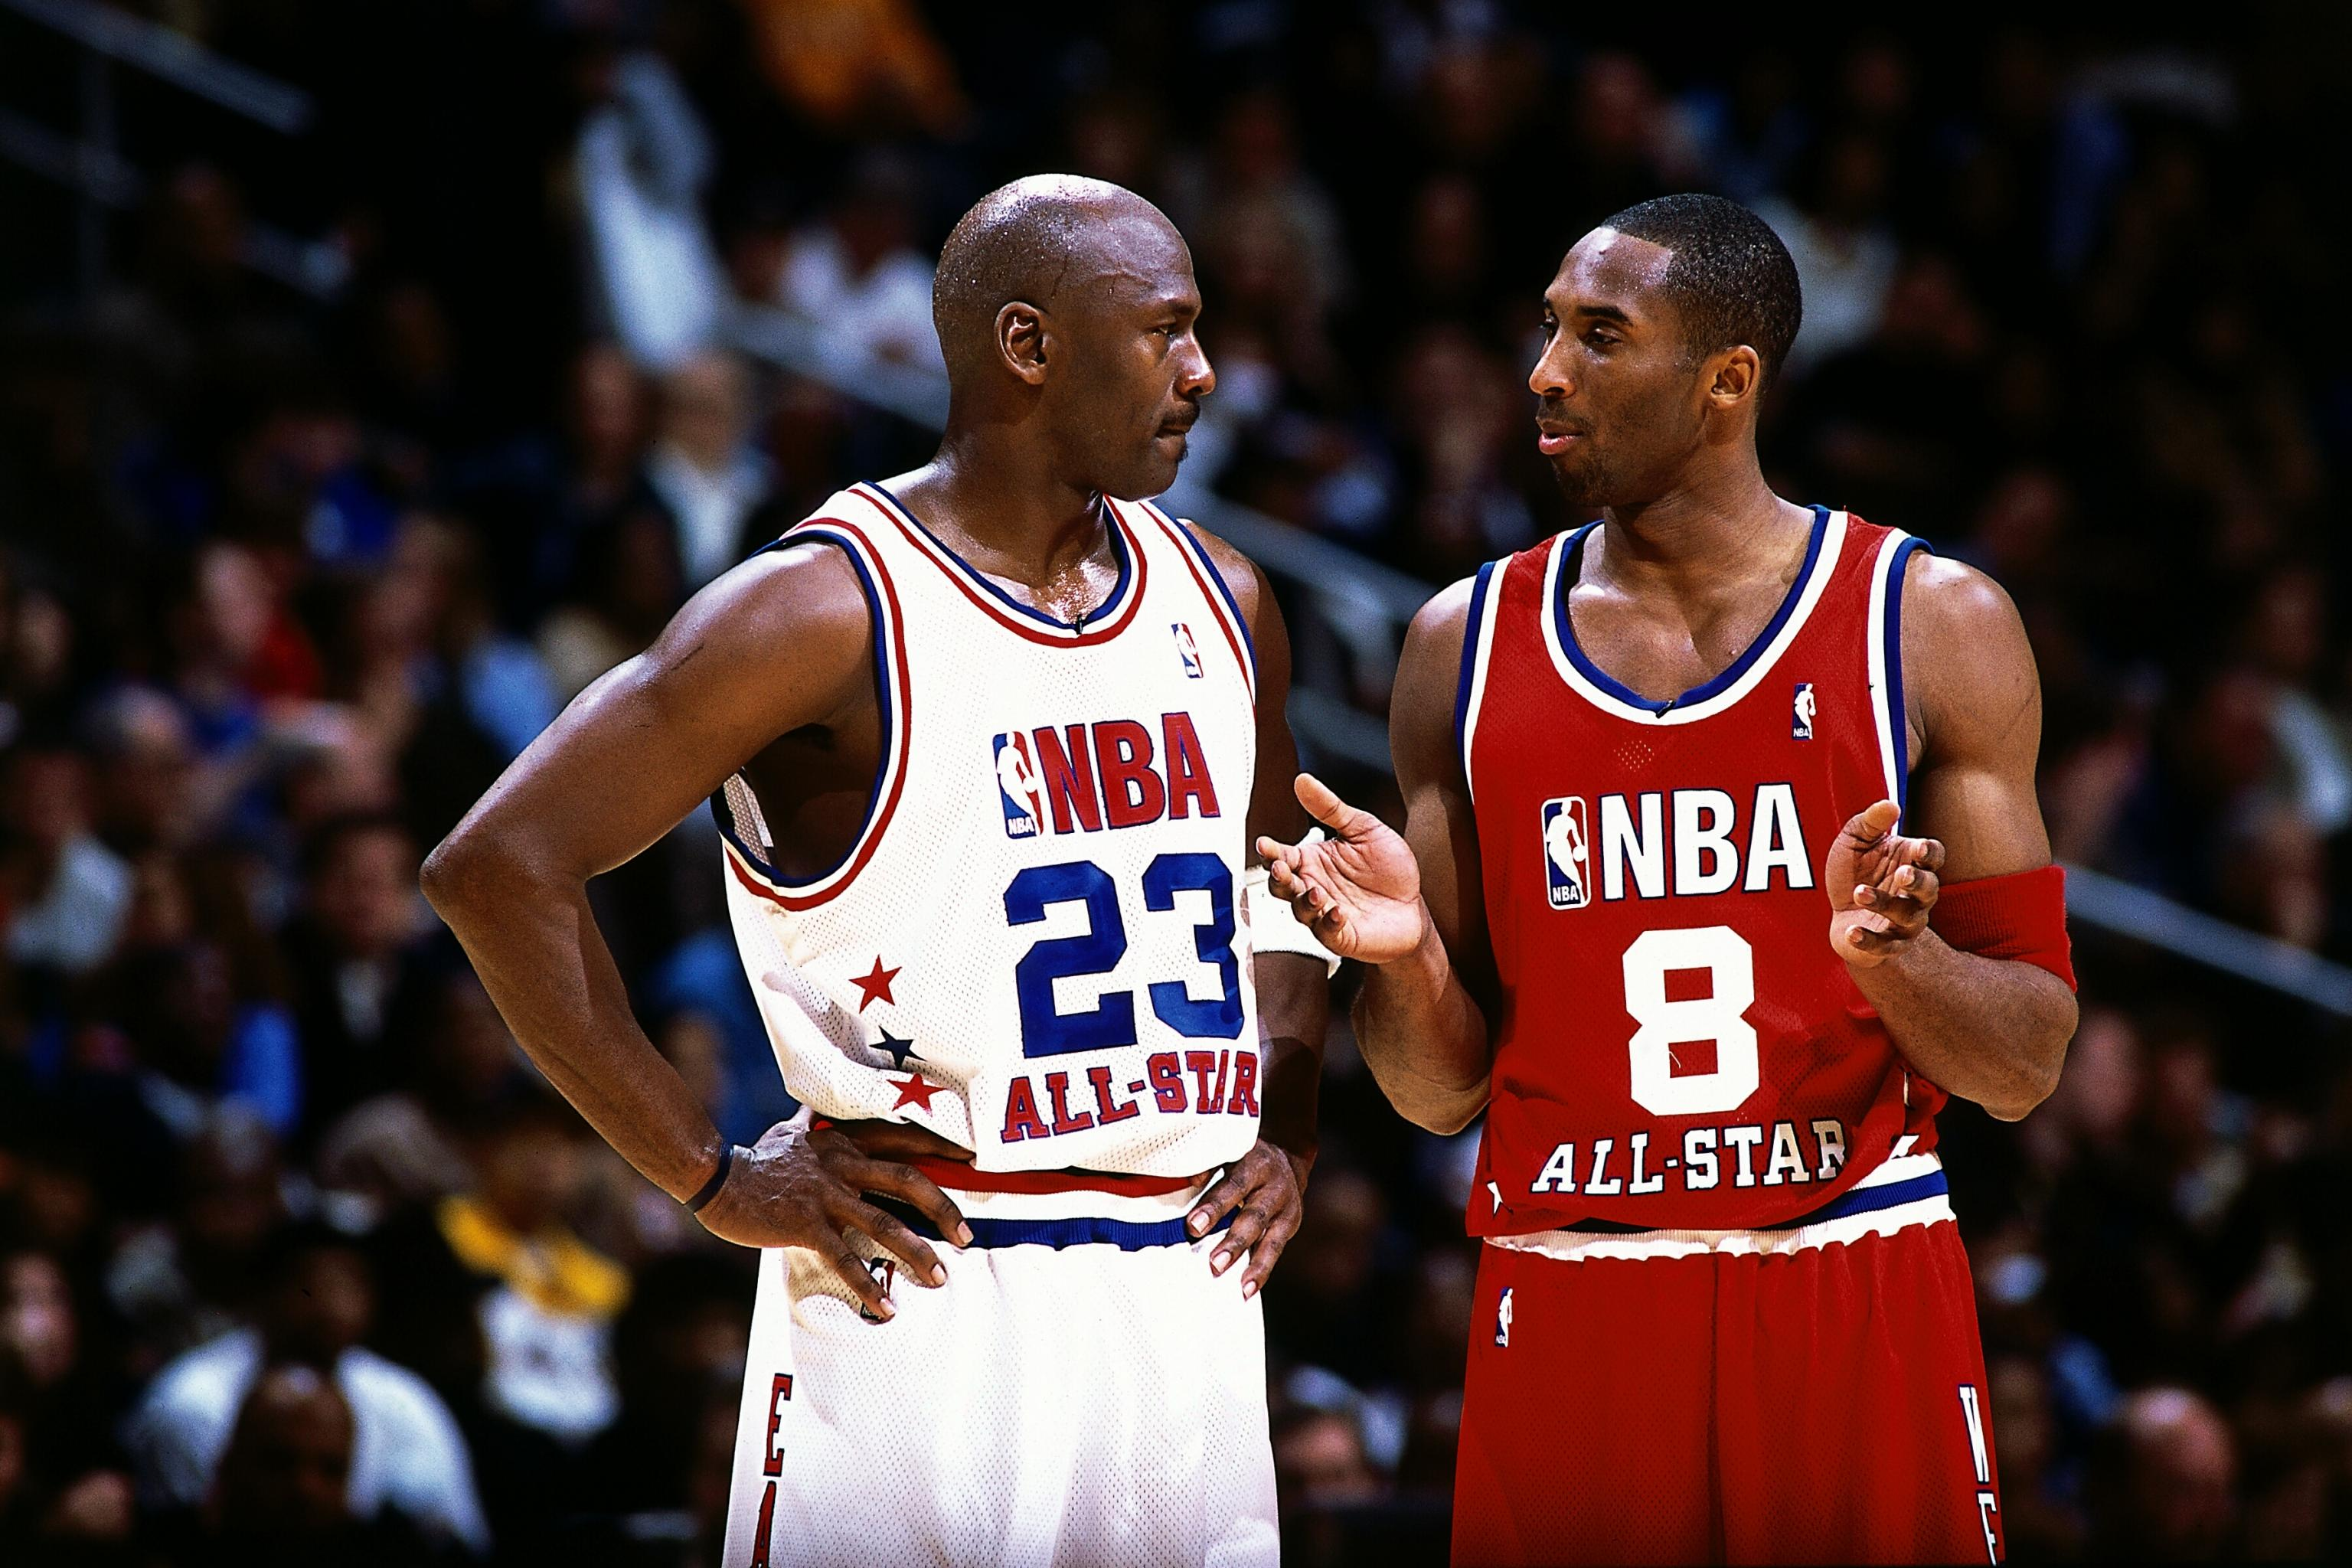 Asistir Maquinilla de afeitar Disciplinario  Kobe Bryant Confirms He Wanted to Join Michael Jordan on Wizards | Bleacher  Report | Latest News, Videos and Highlights